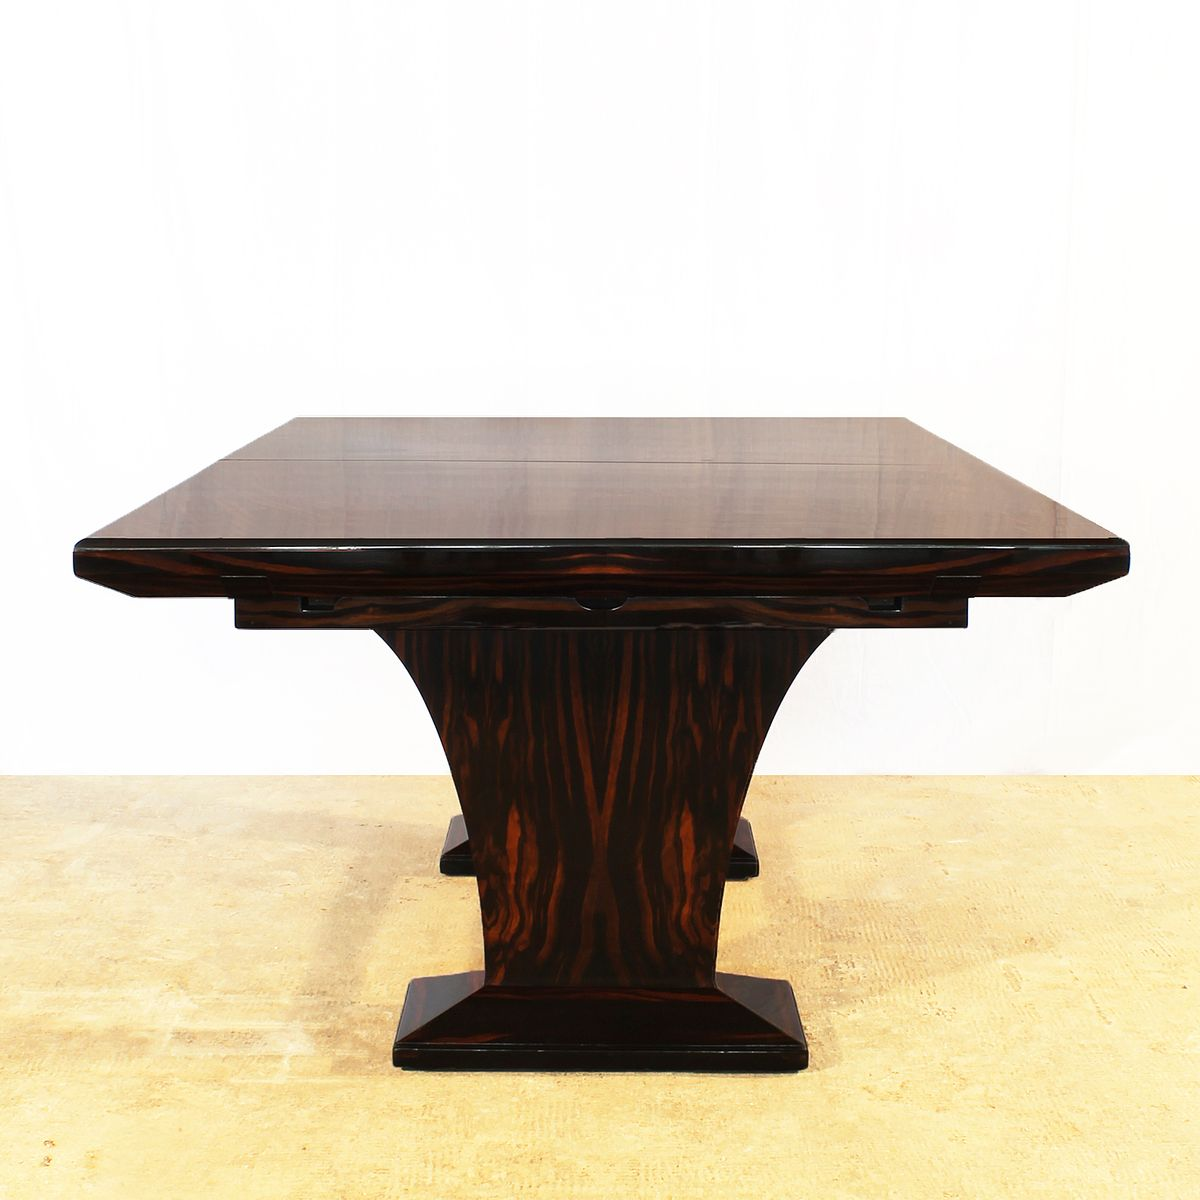 Art deco dining table with extension leaves 1930s for for Miroir art deco 1930